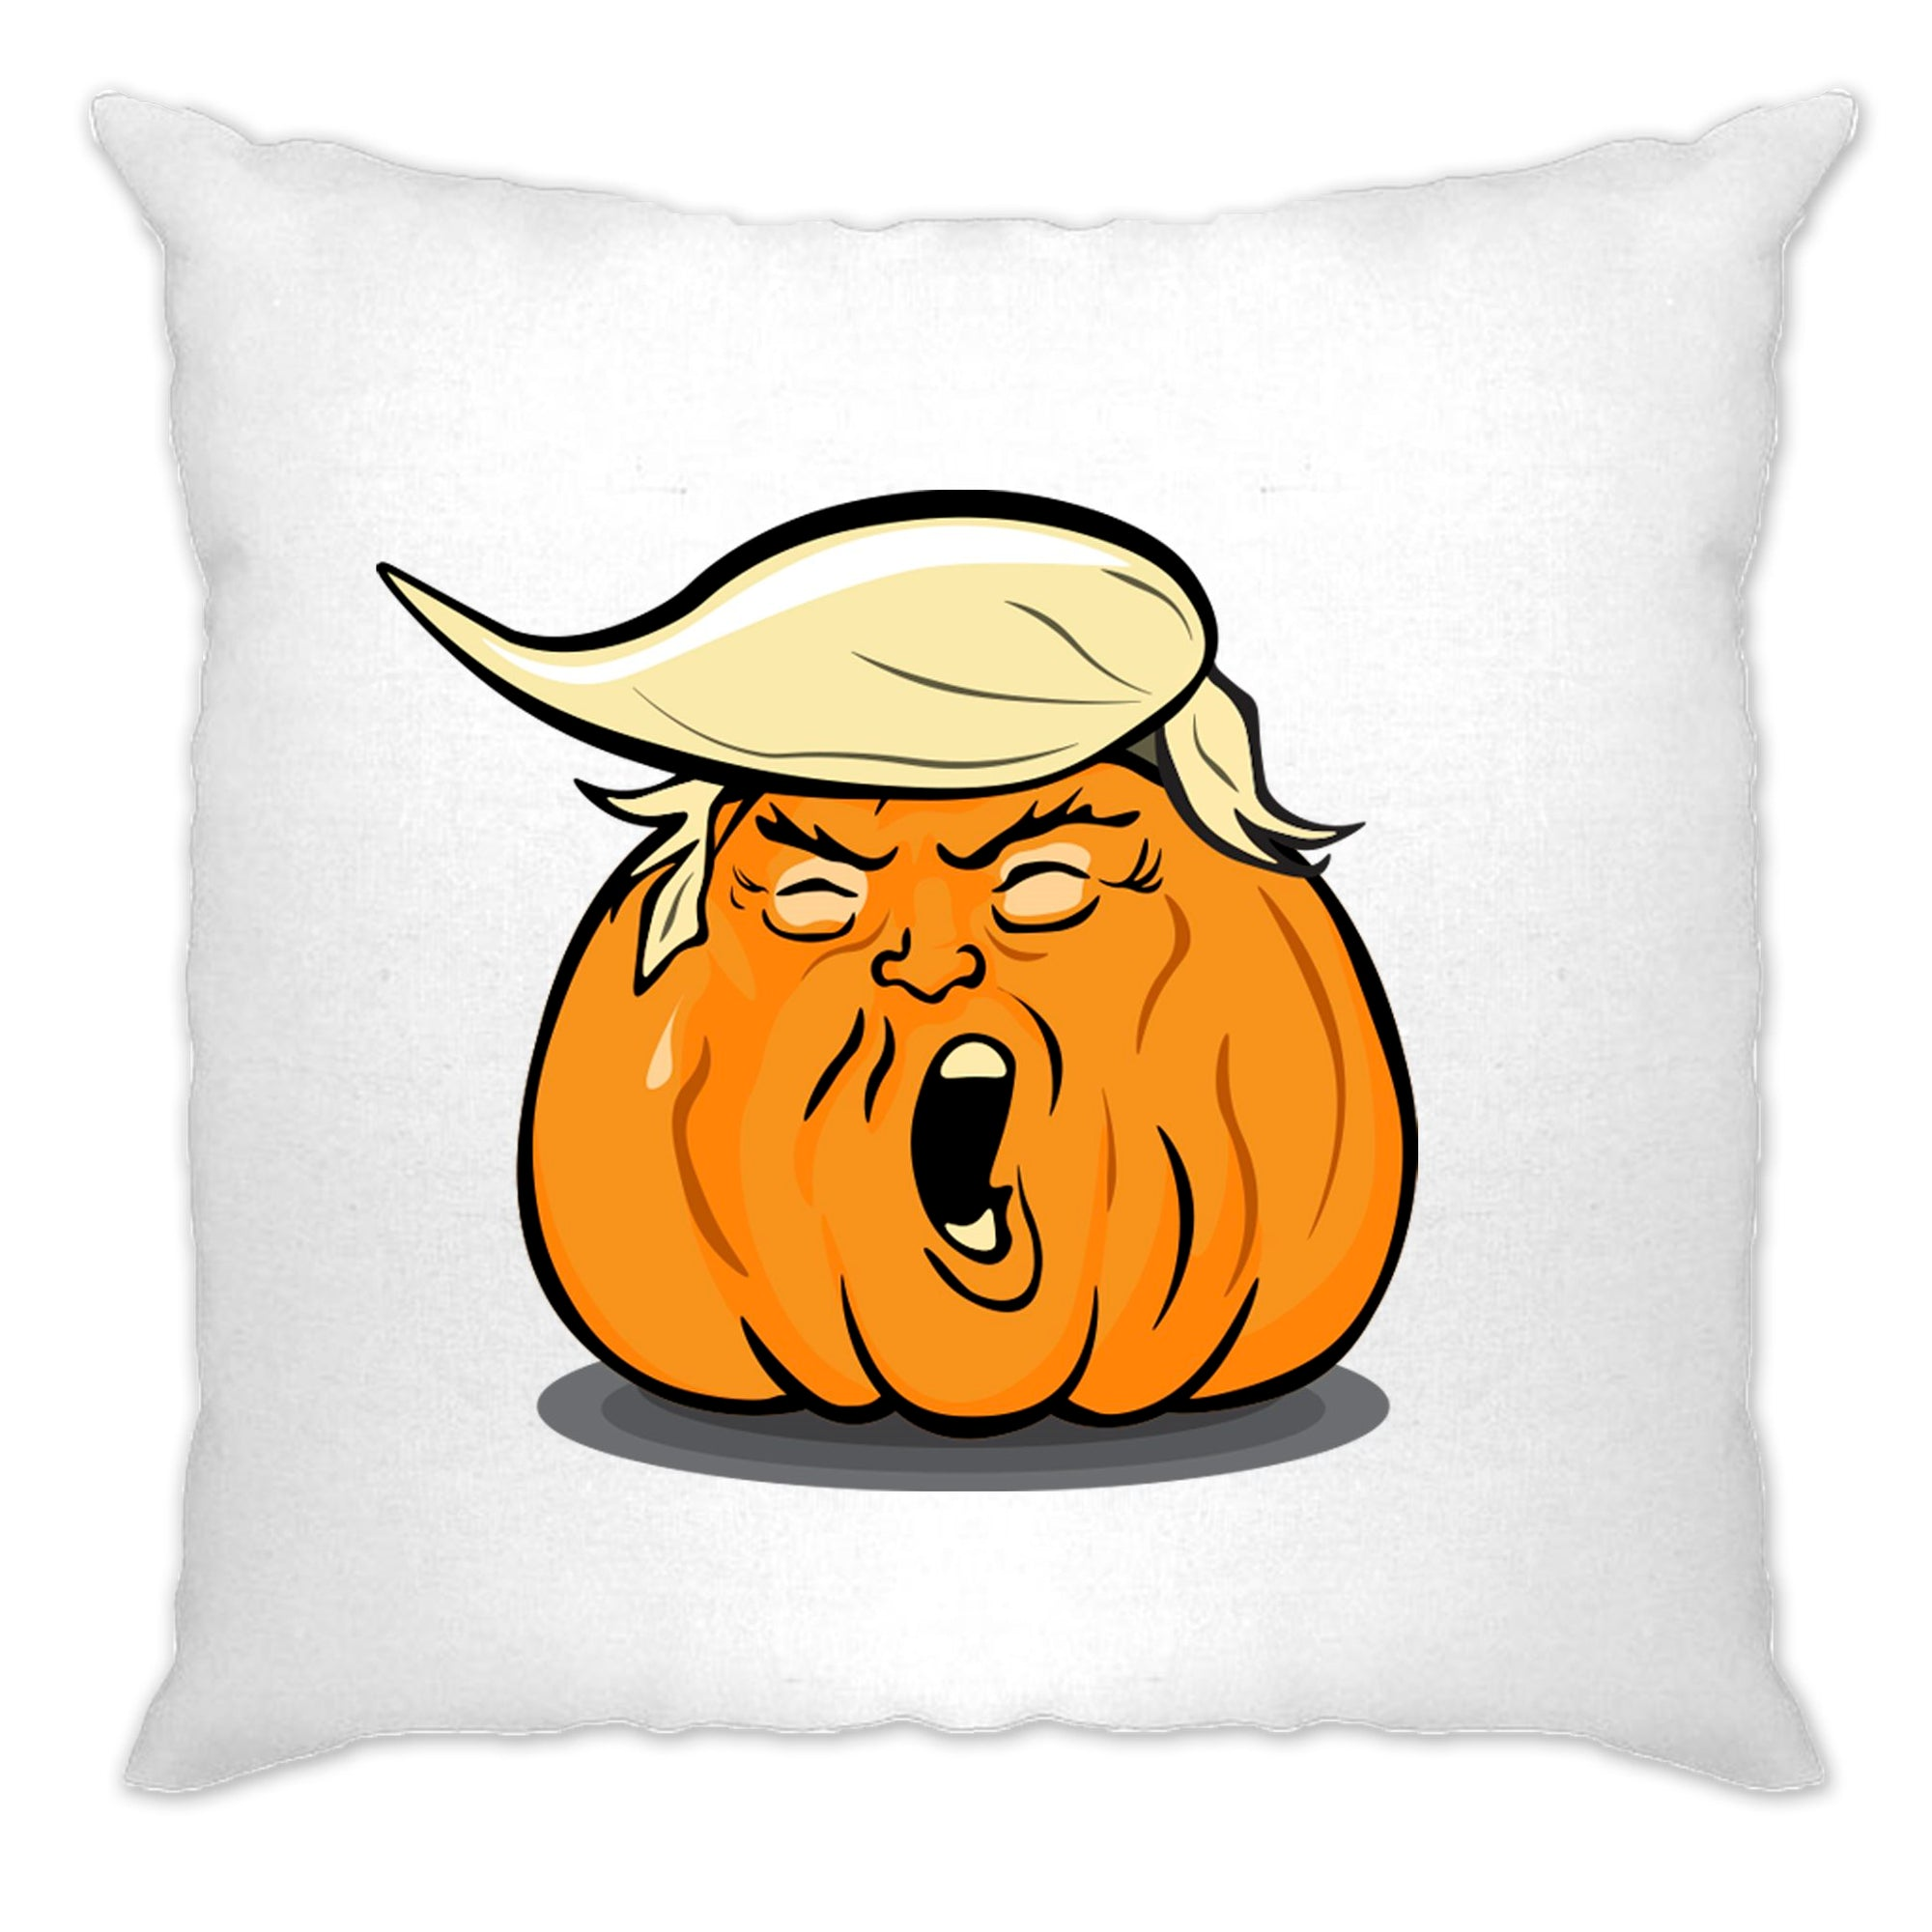 Donald Trump Cushion Cover Haloween Trumpkin Joke